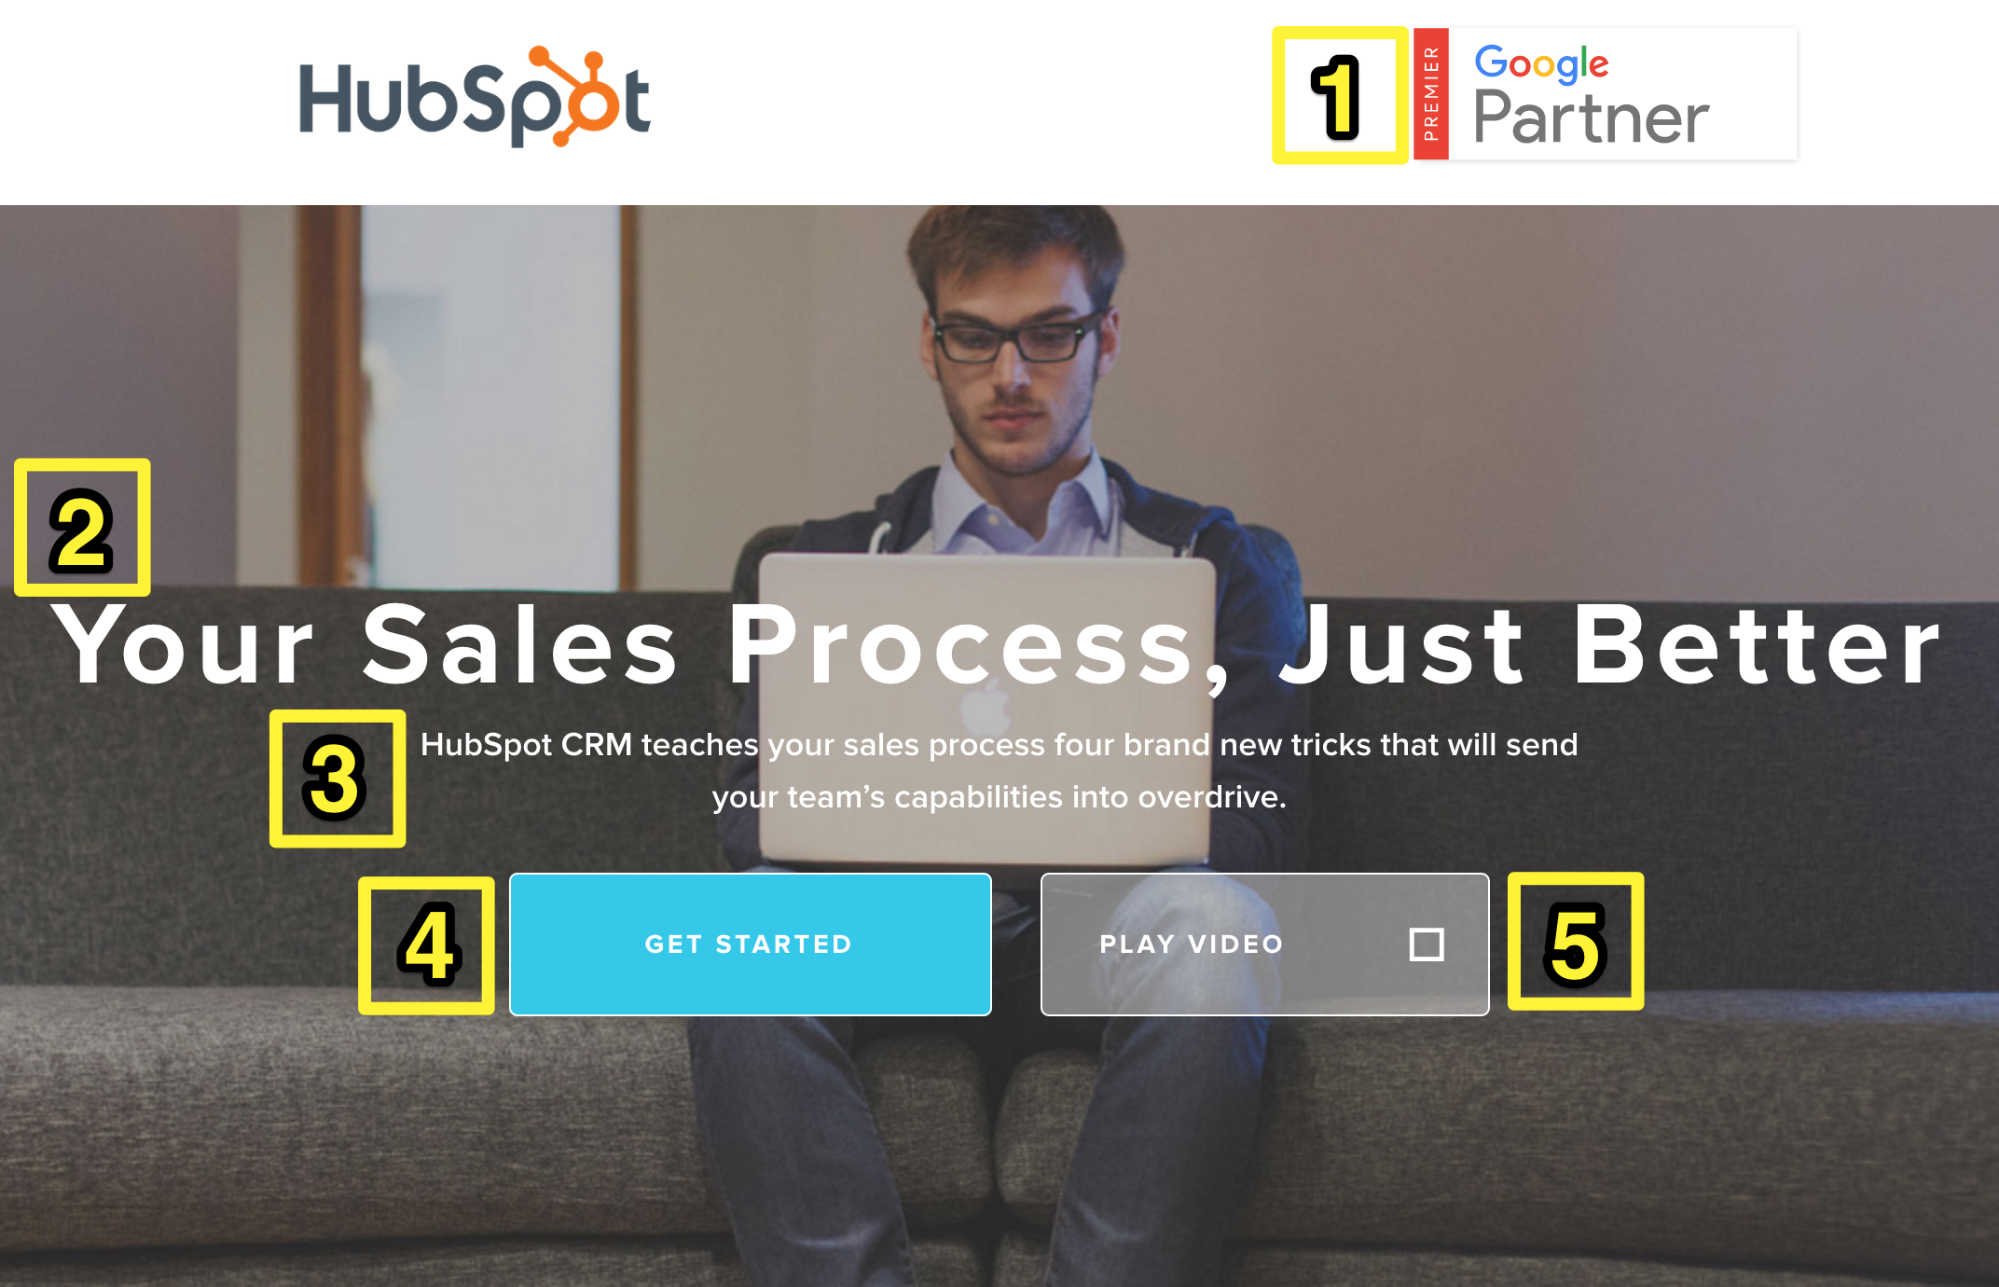 Screenshot showing a landing page for Hubspot